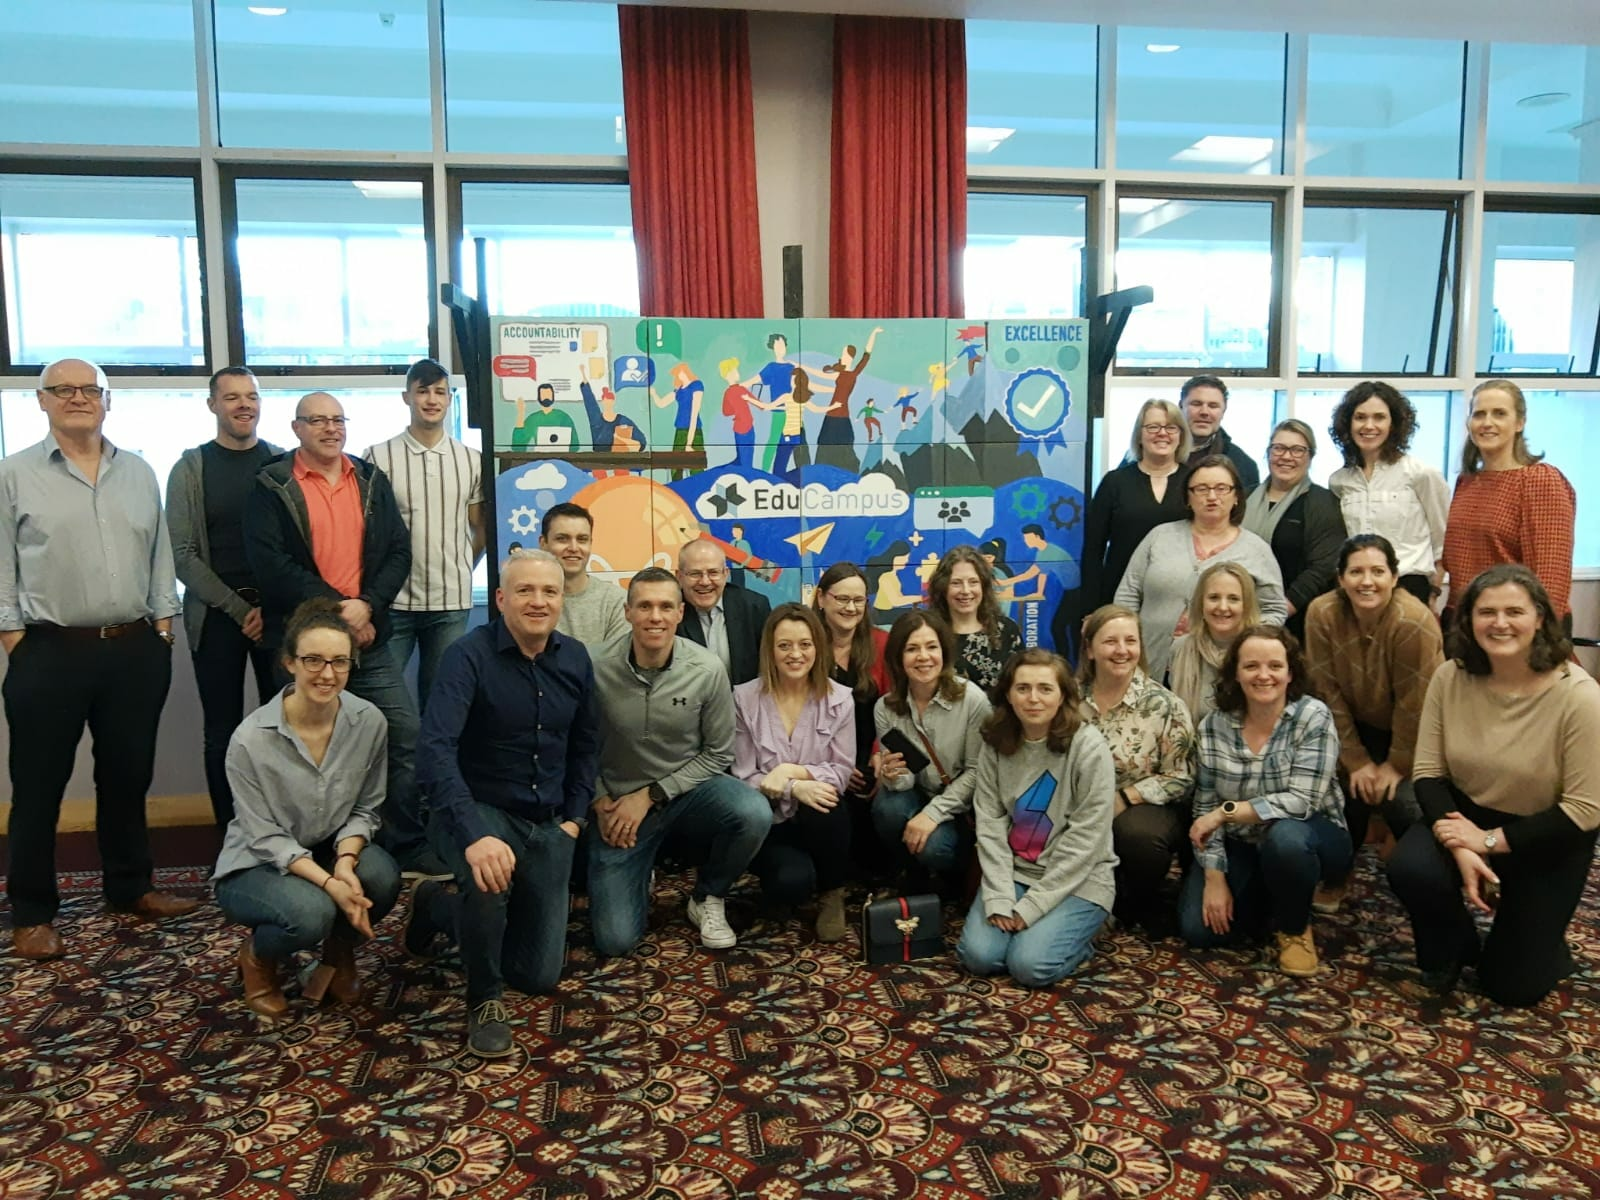 Employees of EduCampus who painted their big picture canvas during their team building day with orangeworks.